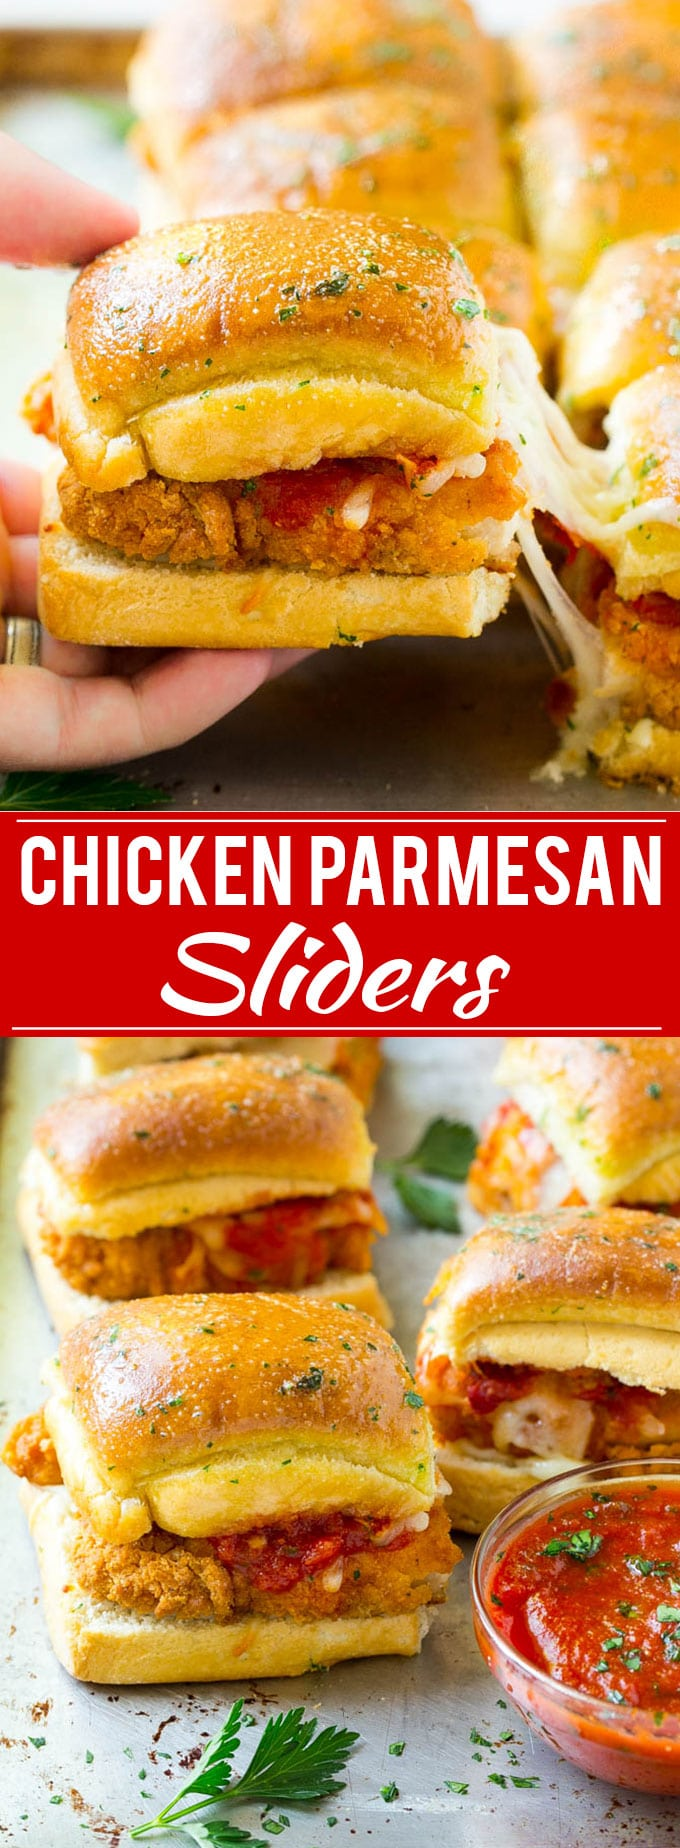 Chicken Parmesan Sliders | Chicken Parmesan Sandwich Recipe | Slider Sandwich Recipe #sandwich #chickenparm #chickenparmesan #sliders #dinner #appetizer #dinneratthezoo